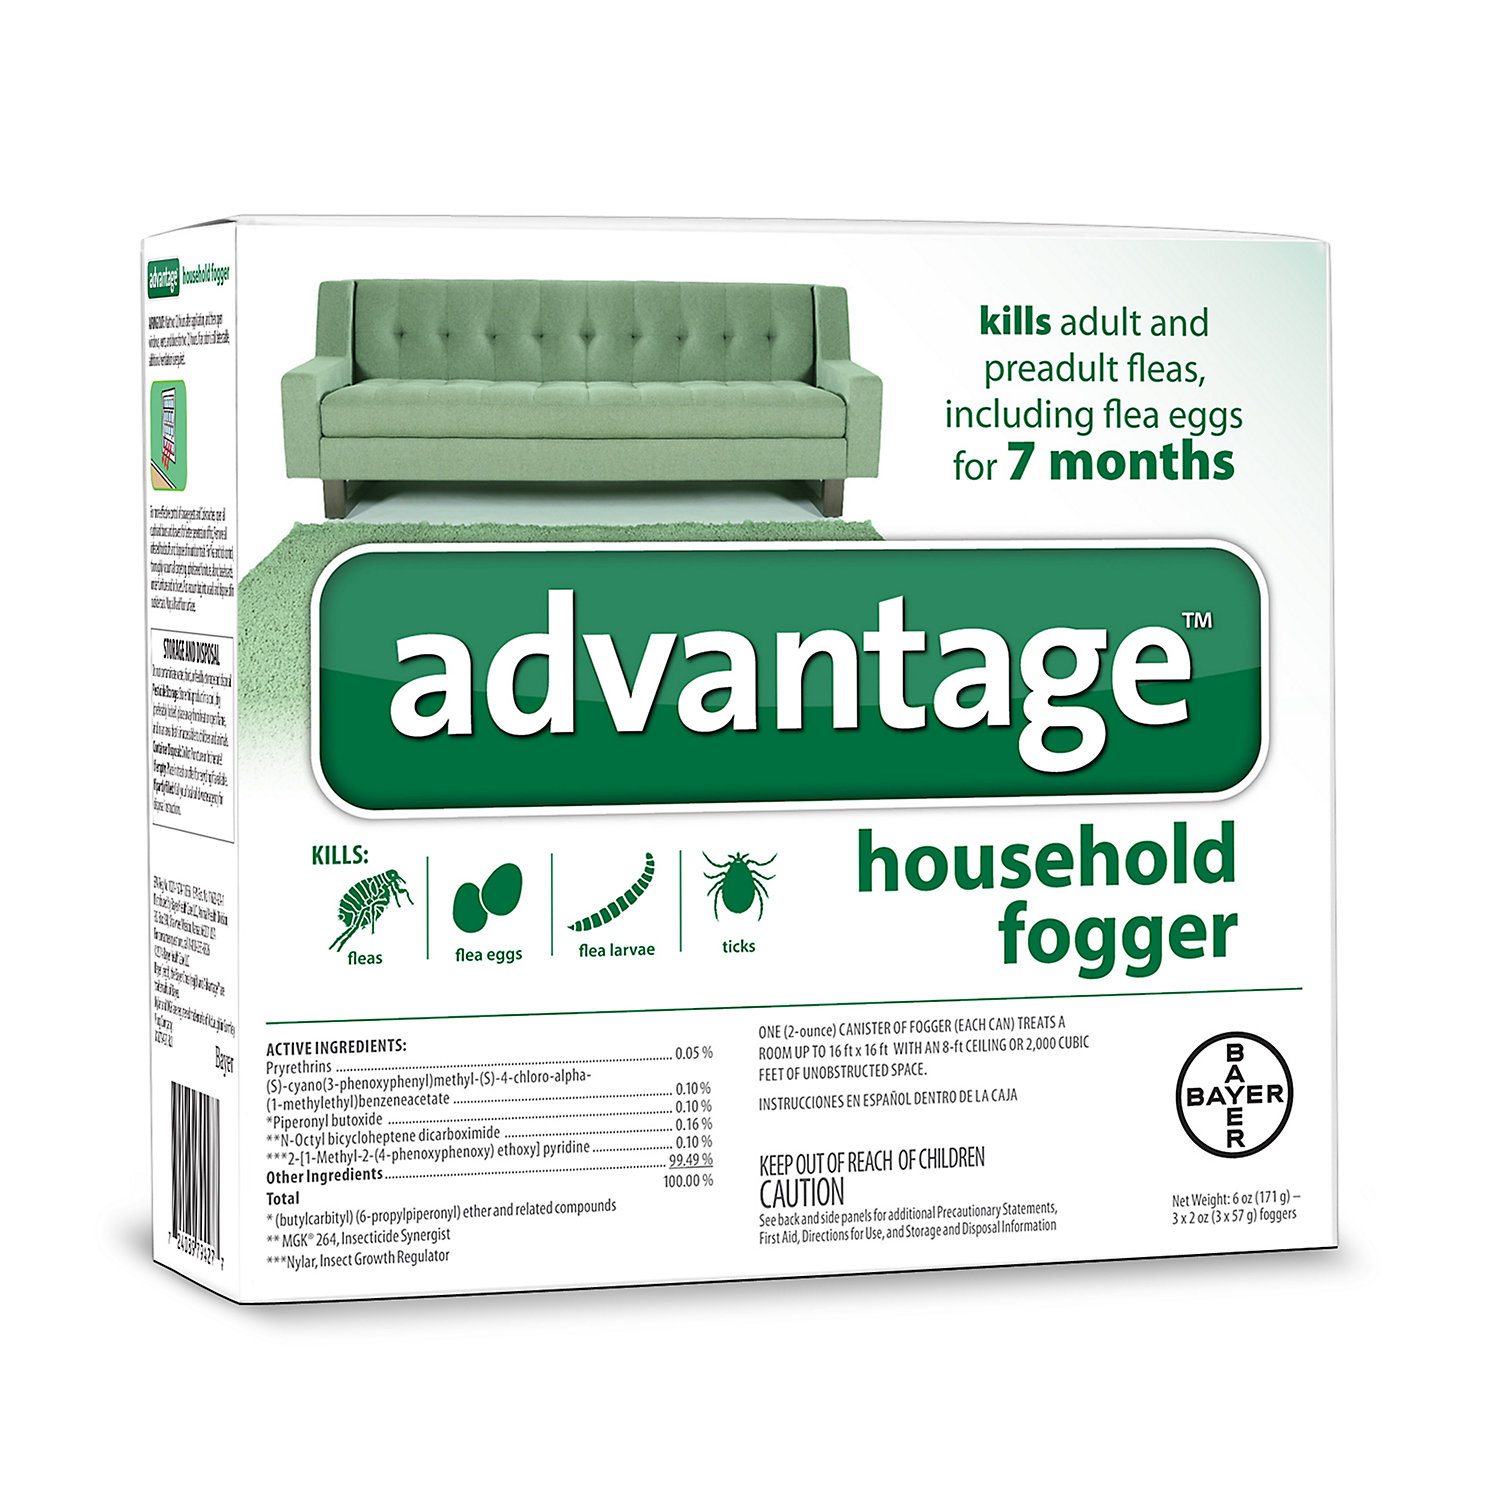 Advantage Household Fogger, Pack of 3 2 oz. cans Flea